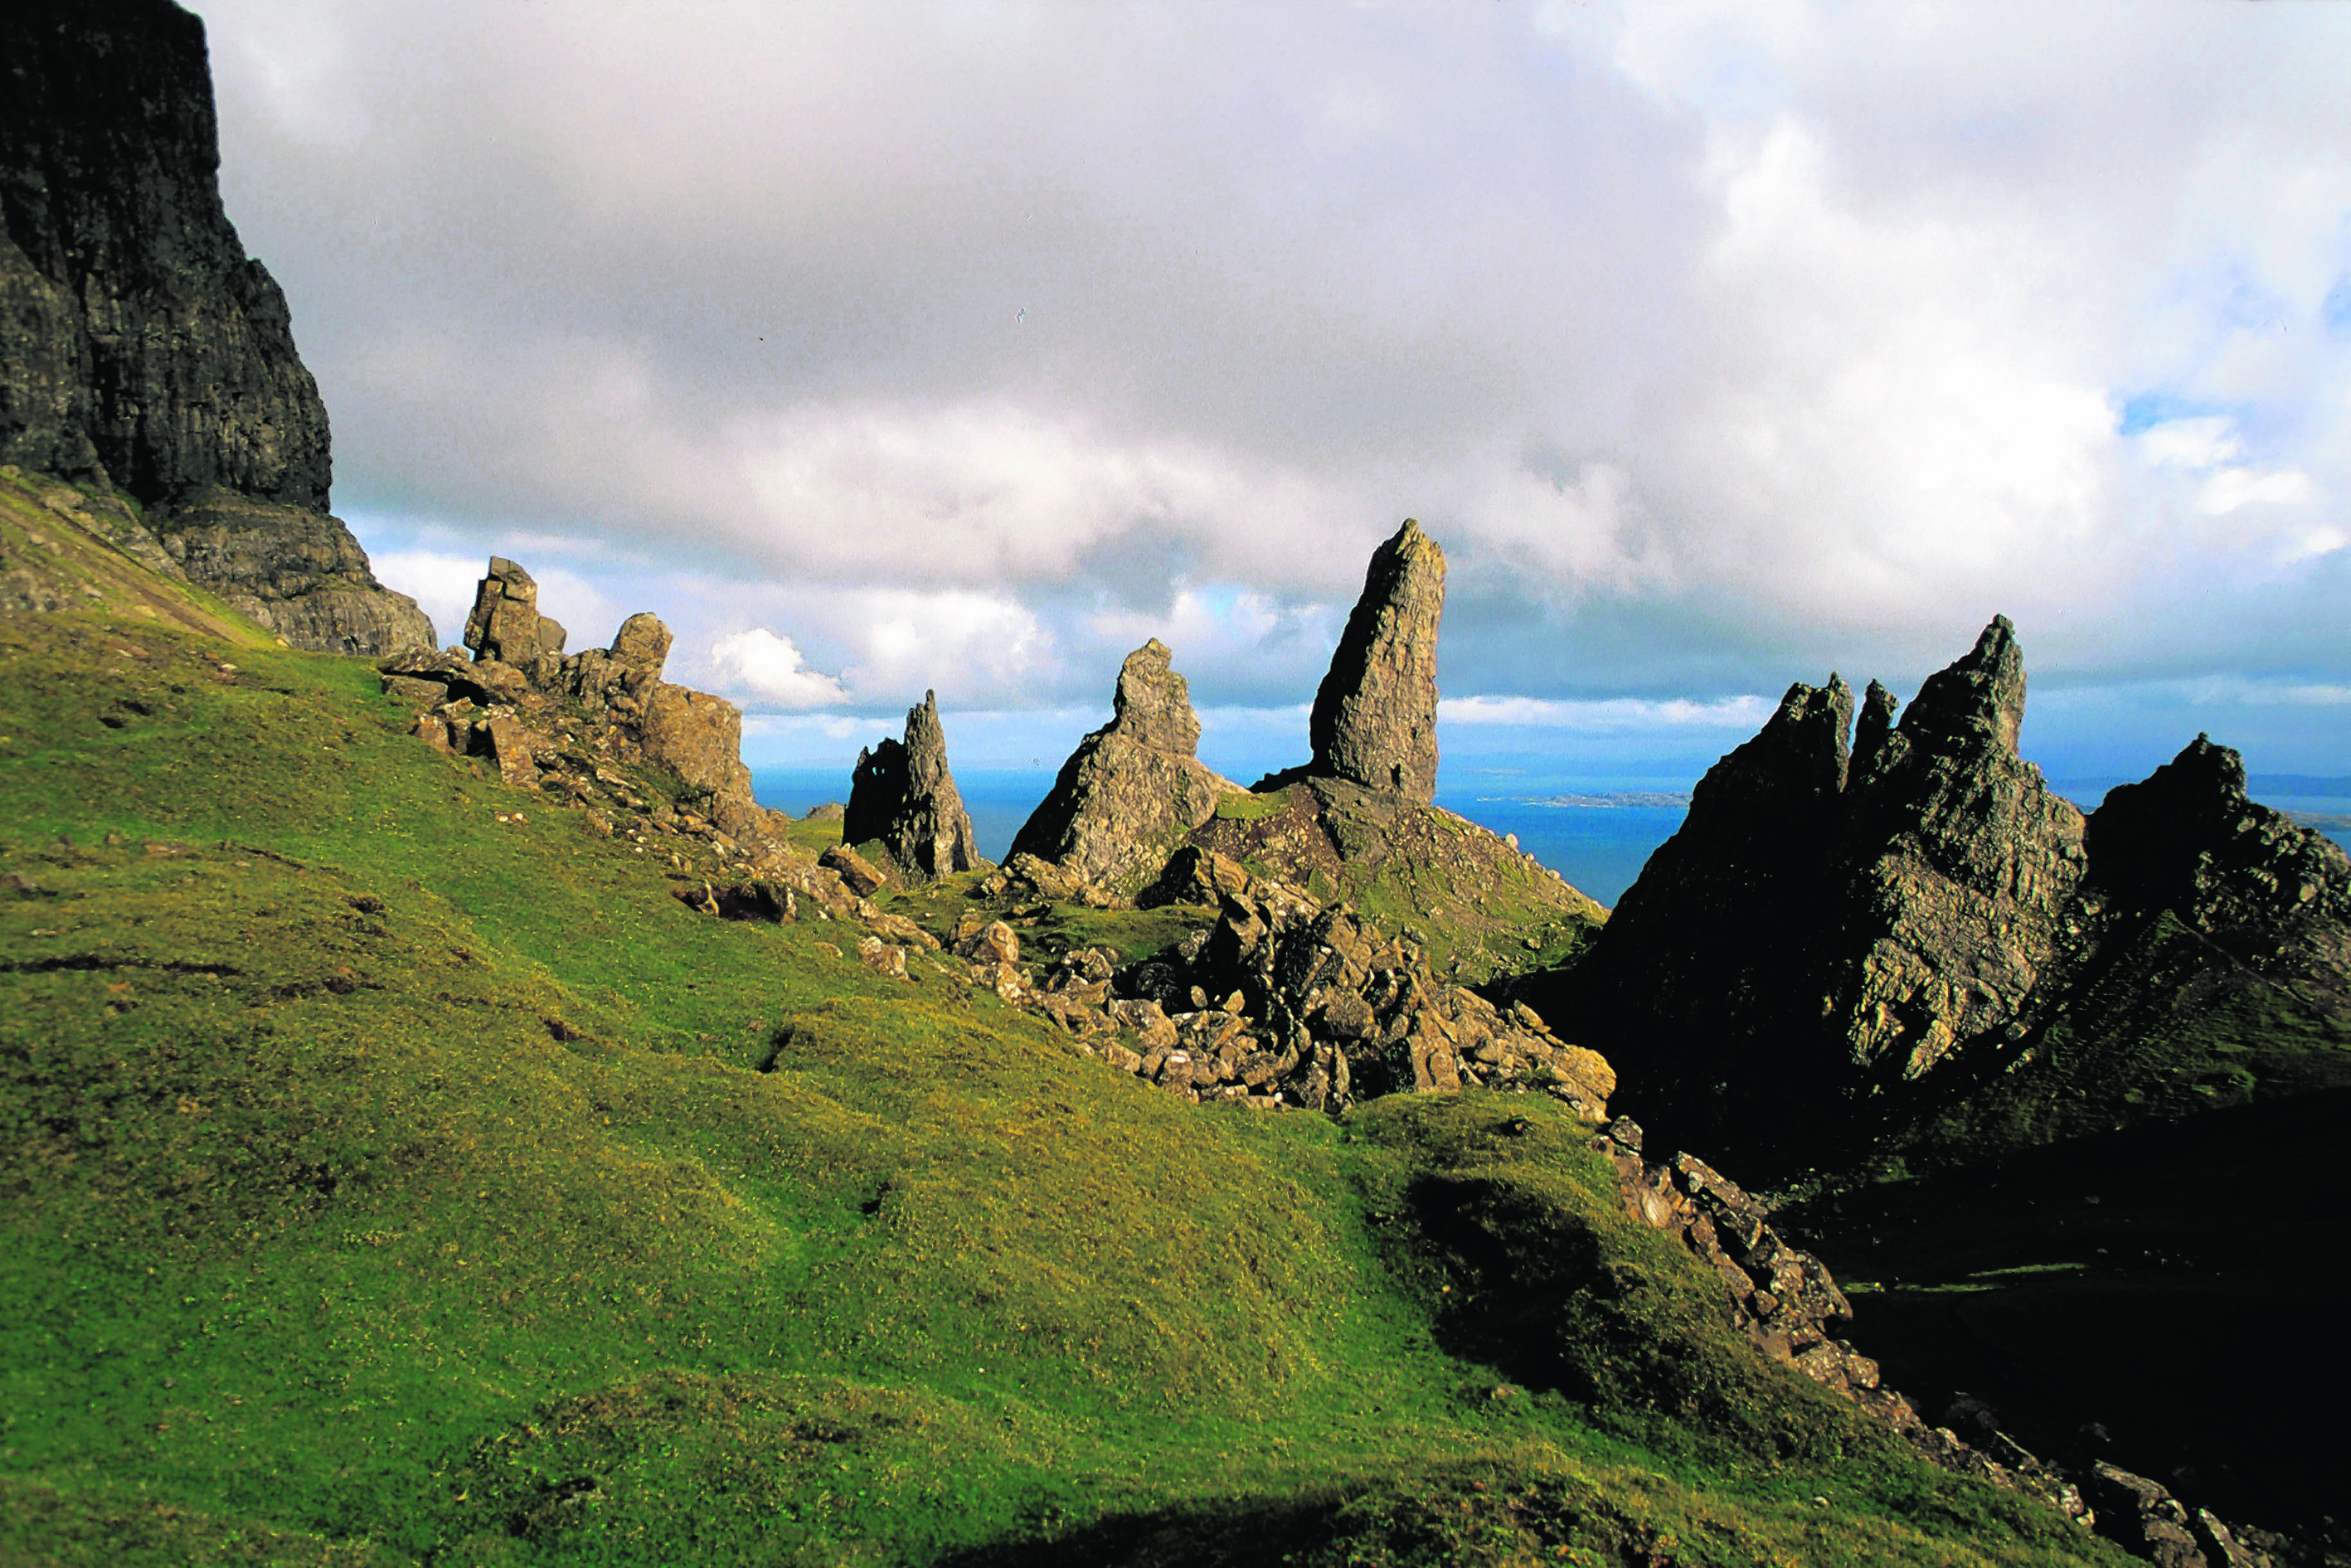 Scenes of famed motion pictures and music videos have been short in the north of Skye, prompting the community to seek something back